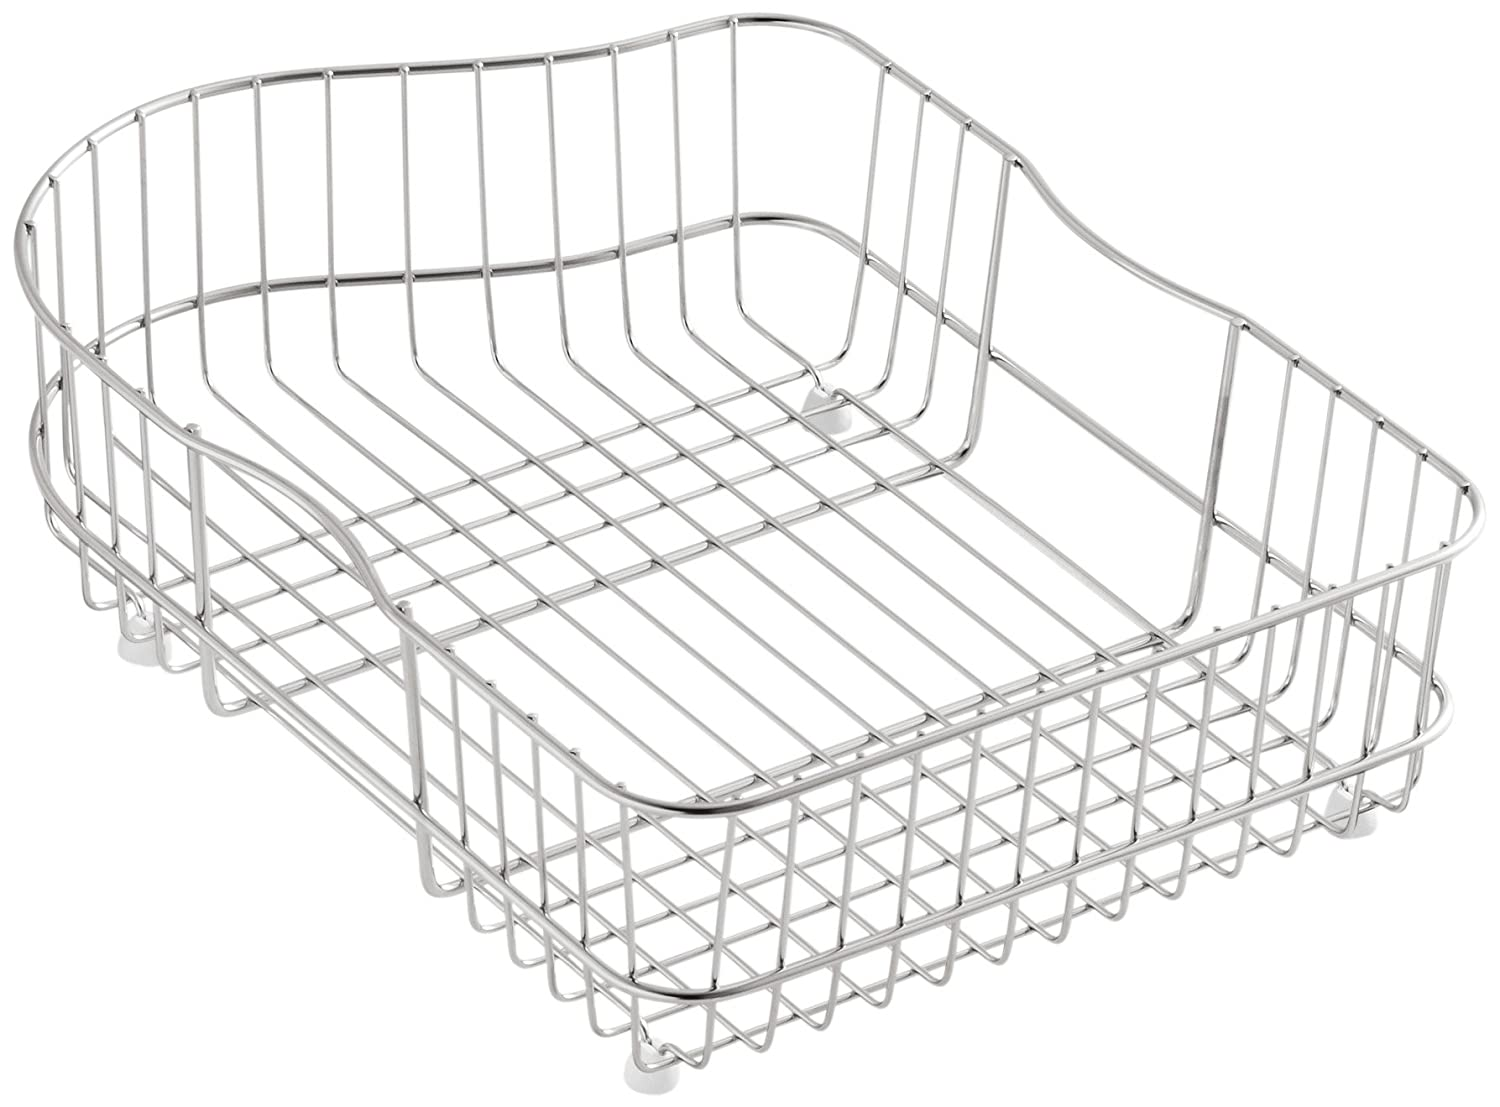 Kohler K 6603L ST Hartland Wire Rinse Basket, Stainless Steel   Sink  Strainers   Amazon.com